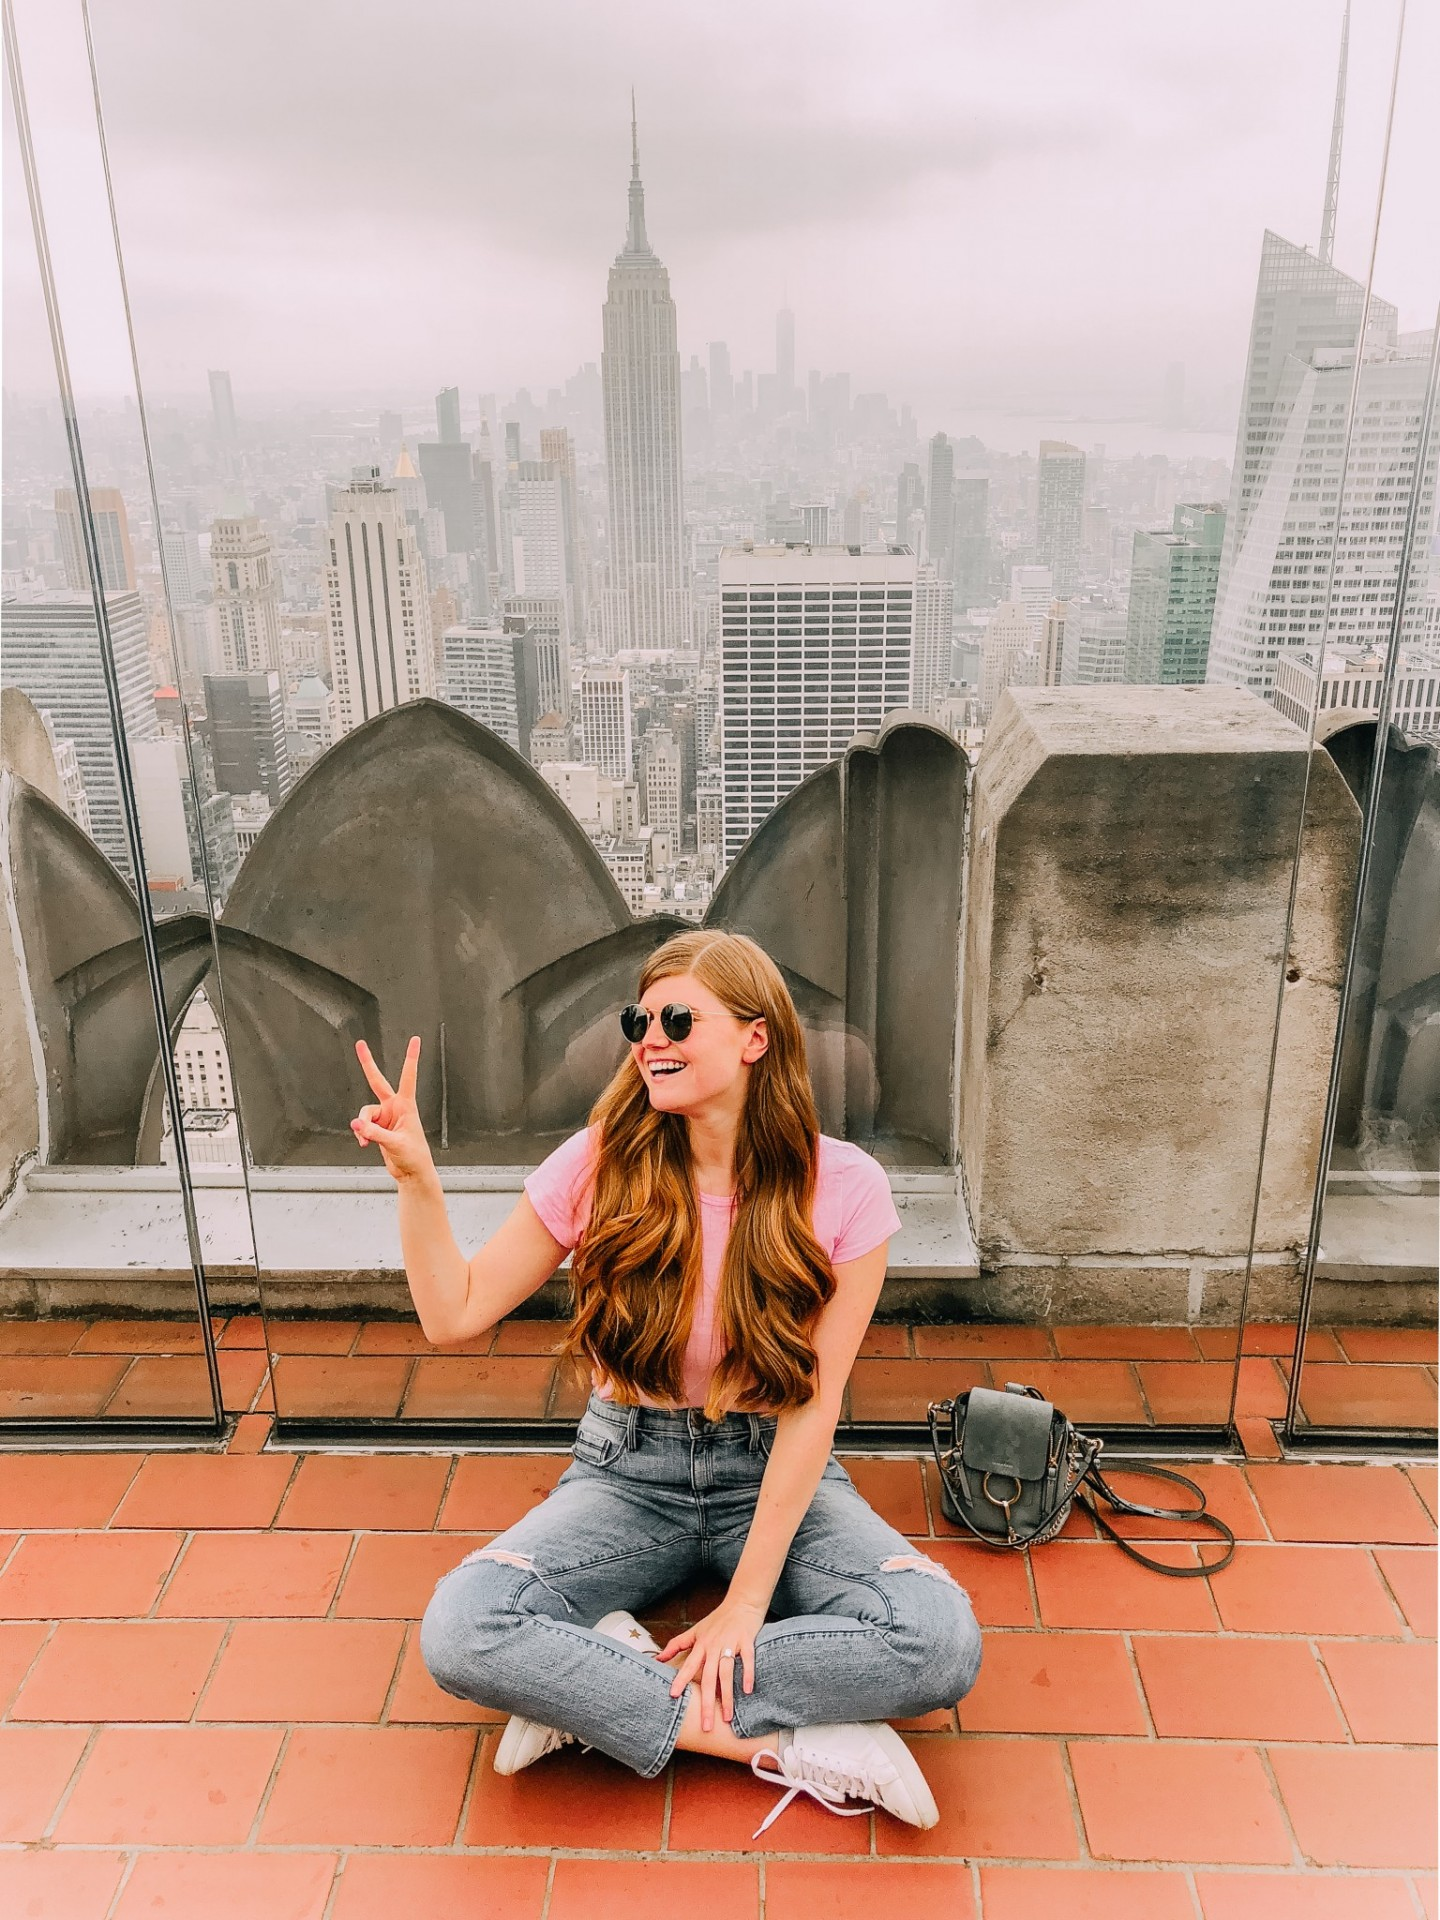 Popular London Lifestyle blogger Mollie Moore shares what she miss the most about America in her American Expat series